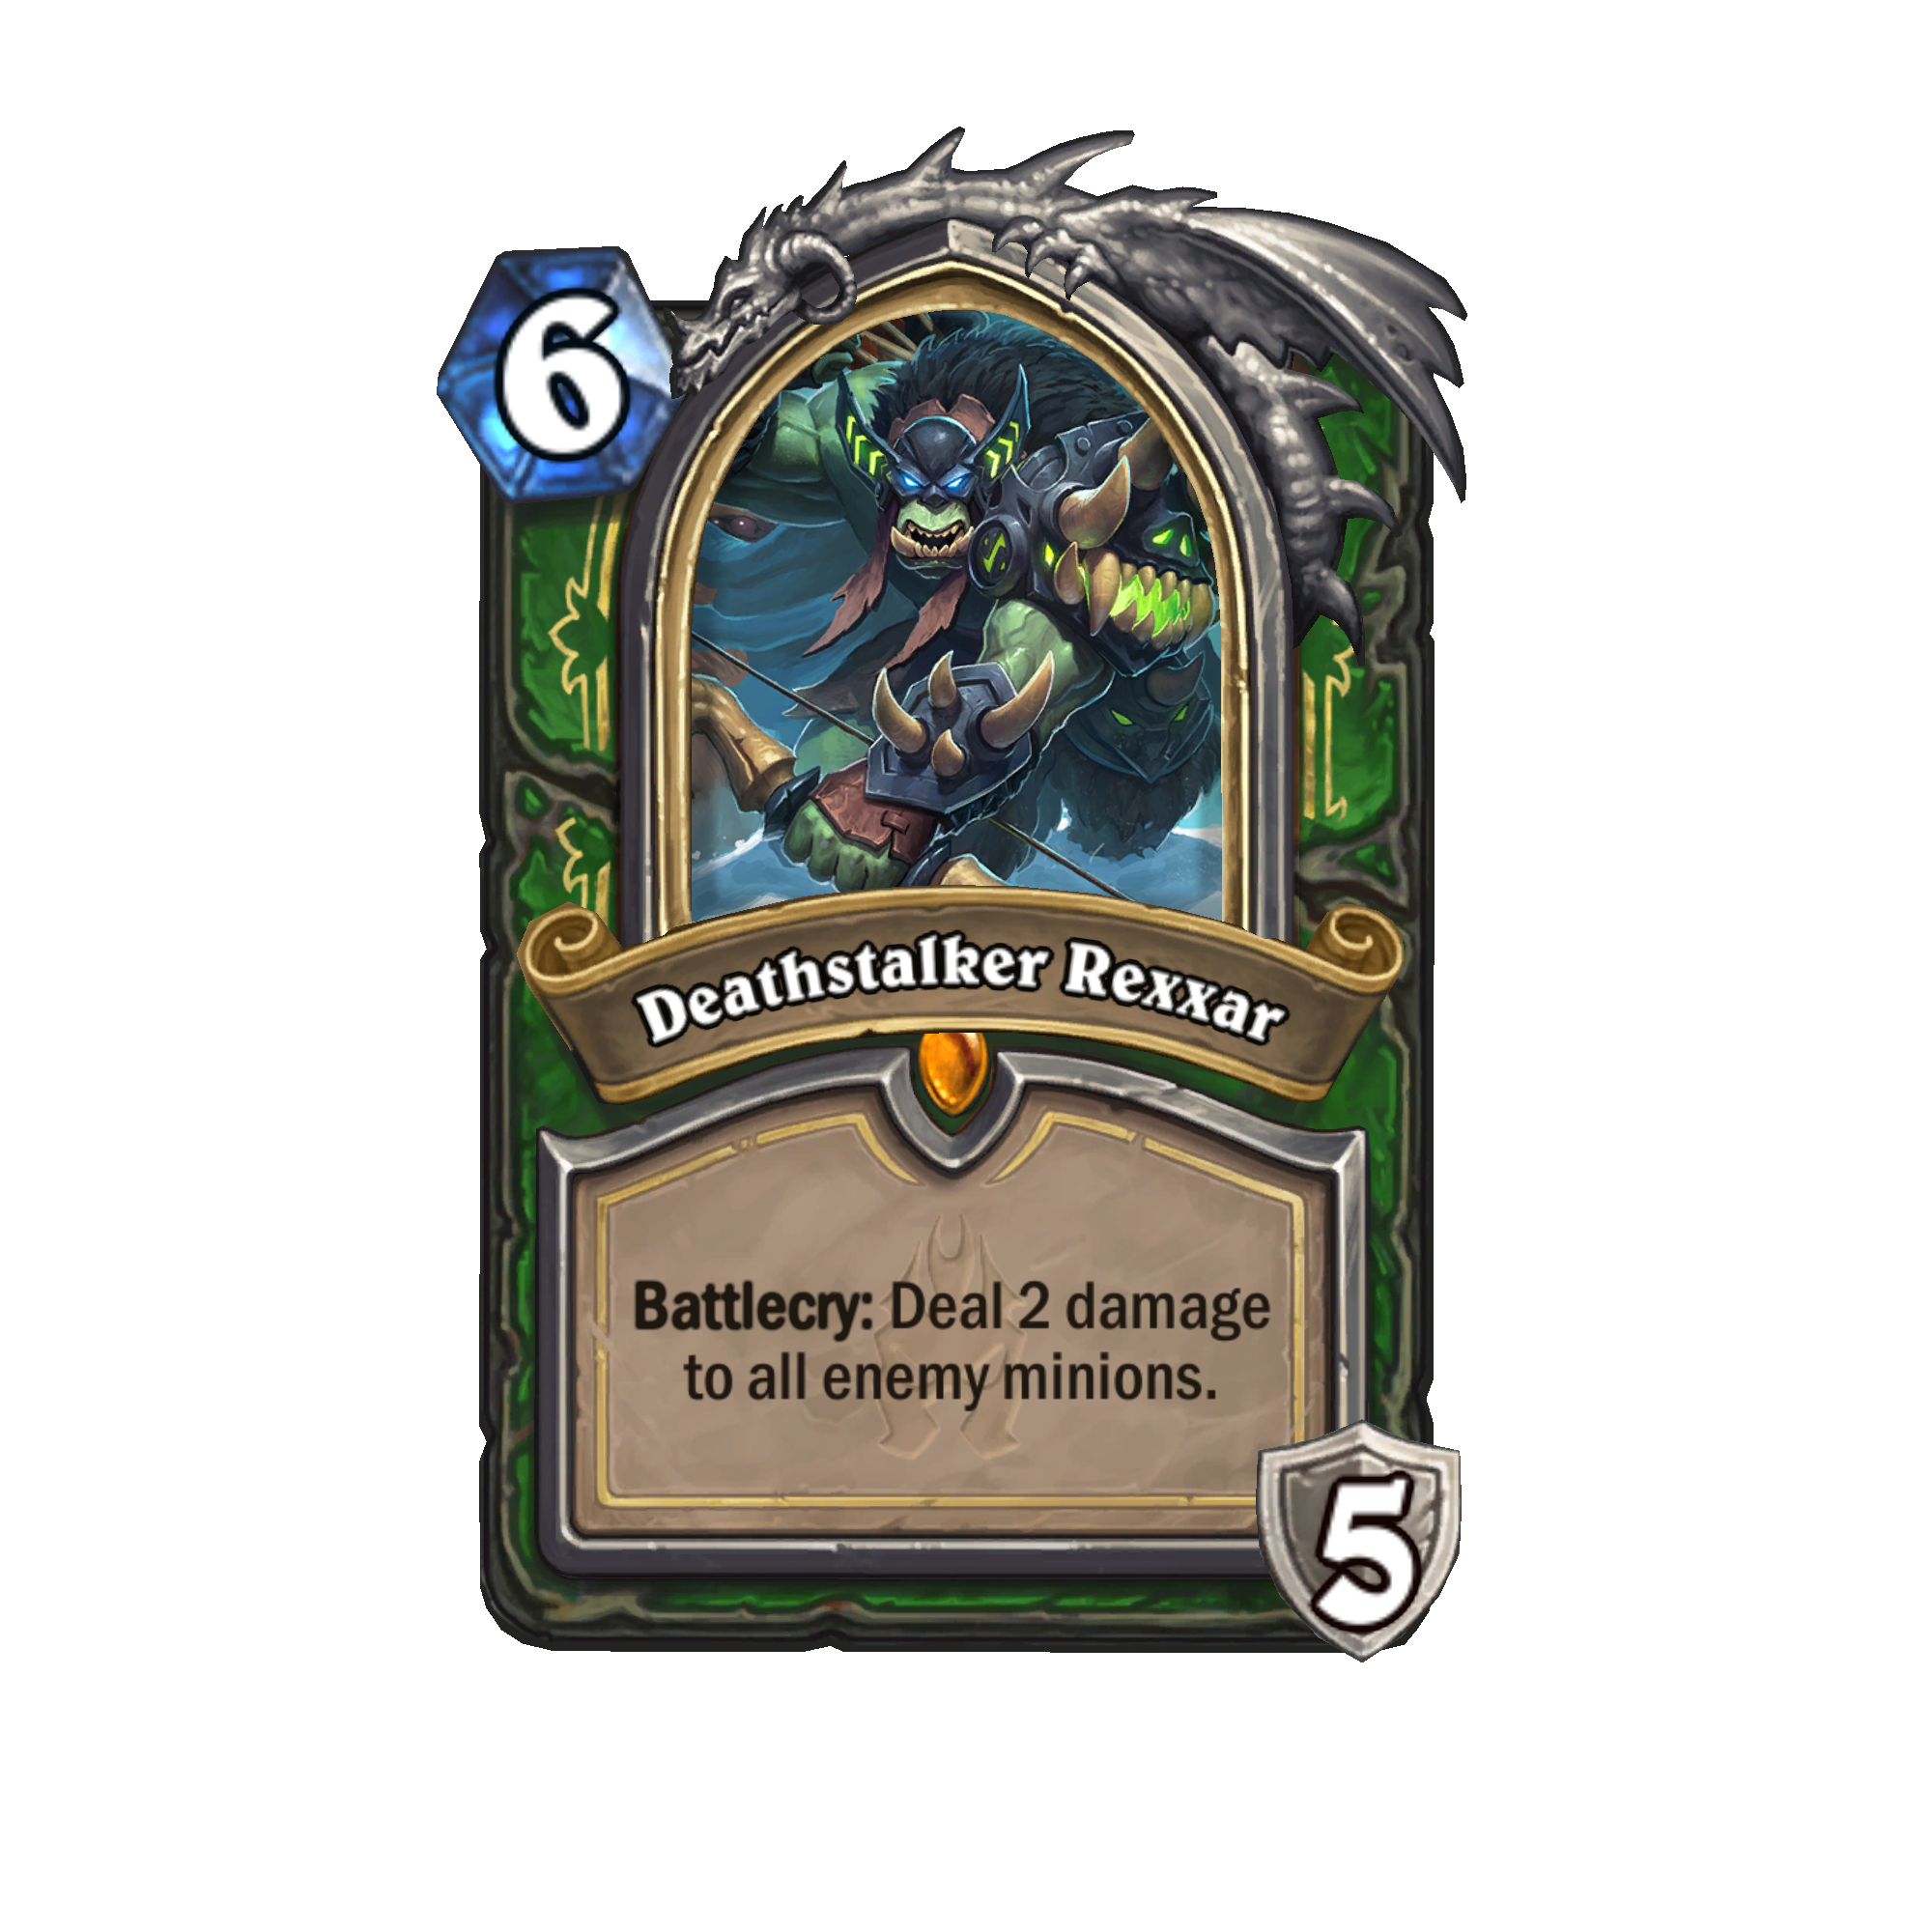 Blizzard announces the latest Hearthstone expansion, Knights